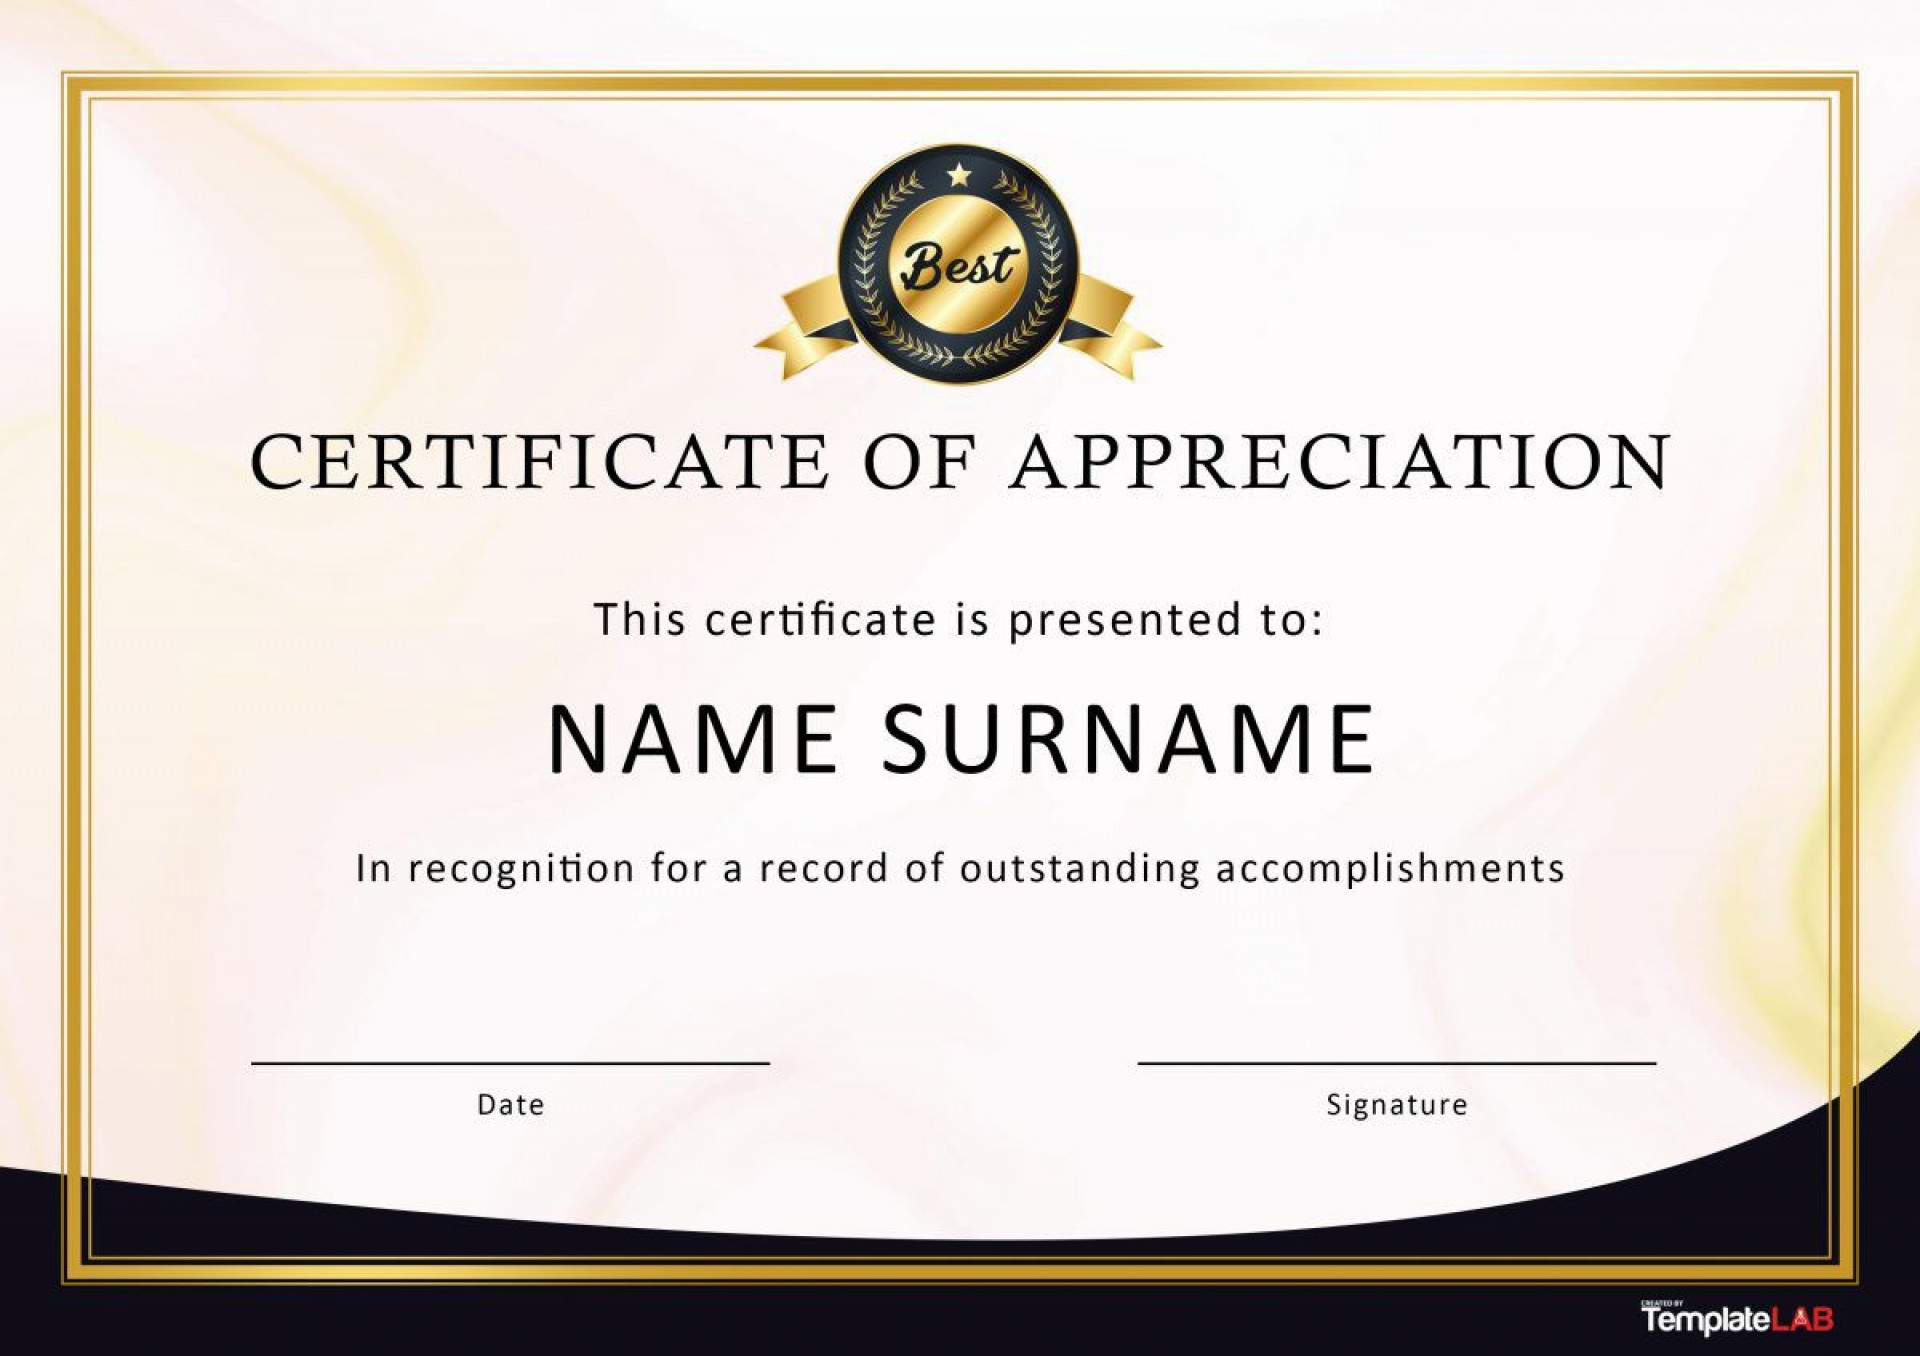 007 Shocking Certificate Of Recognition Template Word Picture  Award Microsoft Free1920